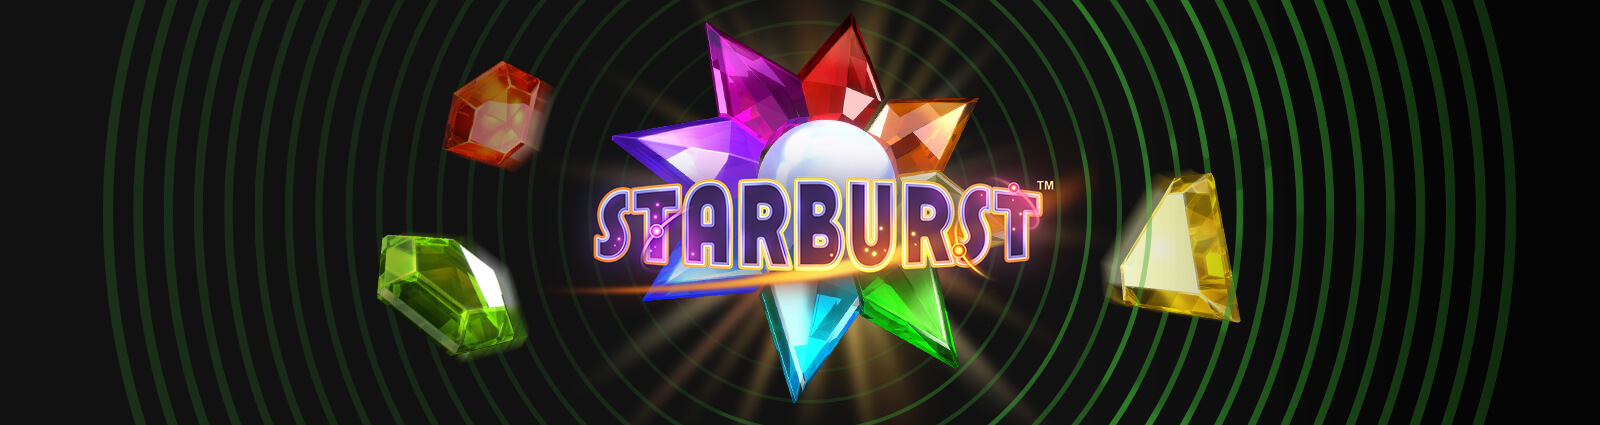 Promo page banner Unibet Casino Daily Tournaments Starburst